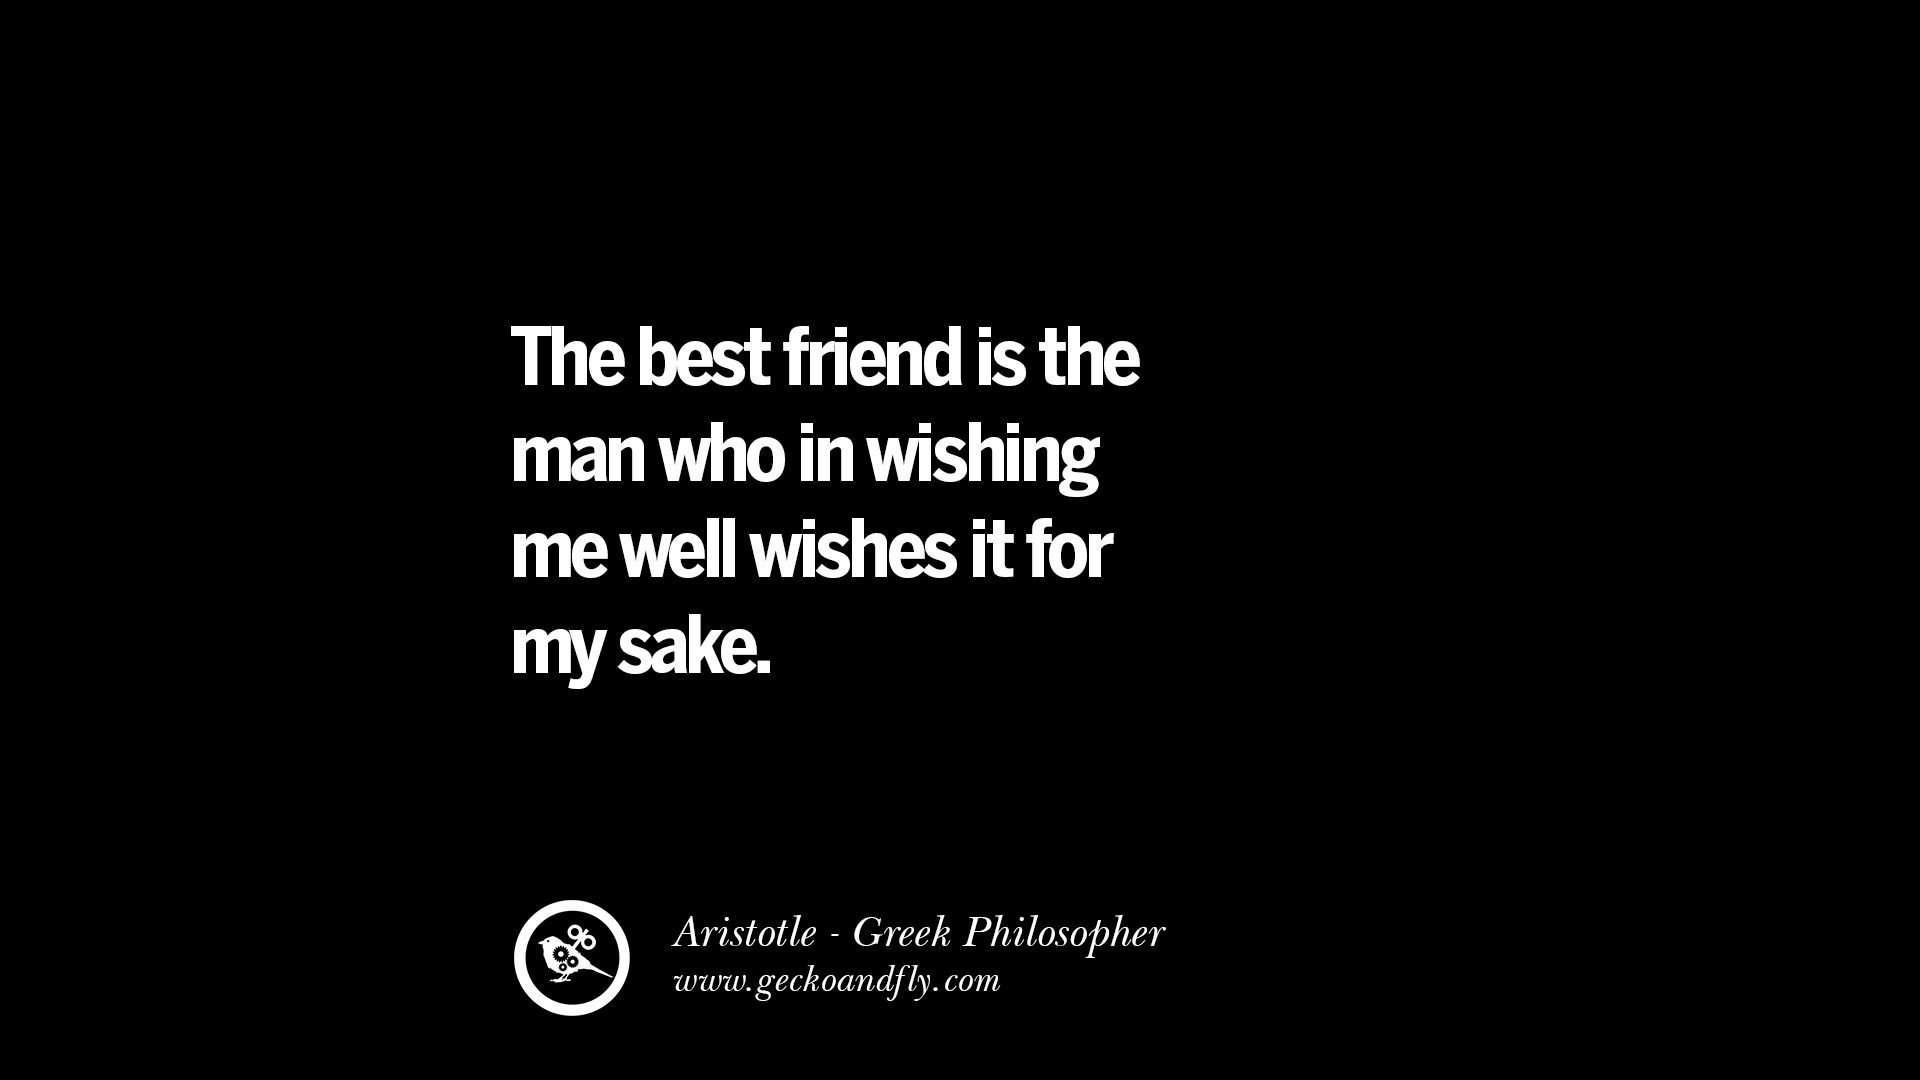 famous aristotle quotes on ethics love life politics and the best friend is the man who in wishing me well wishes it for my sake